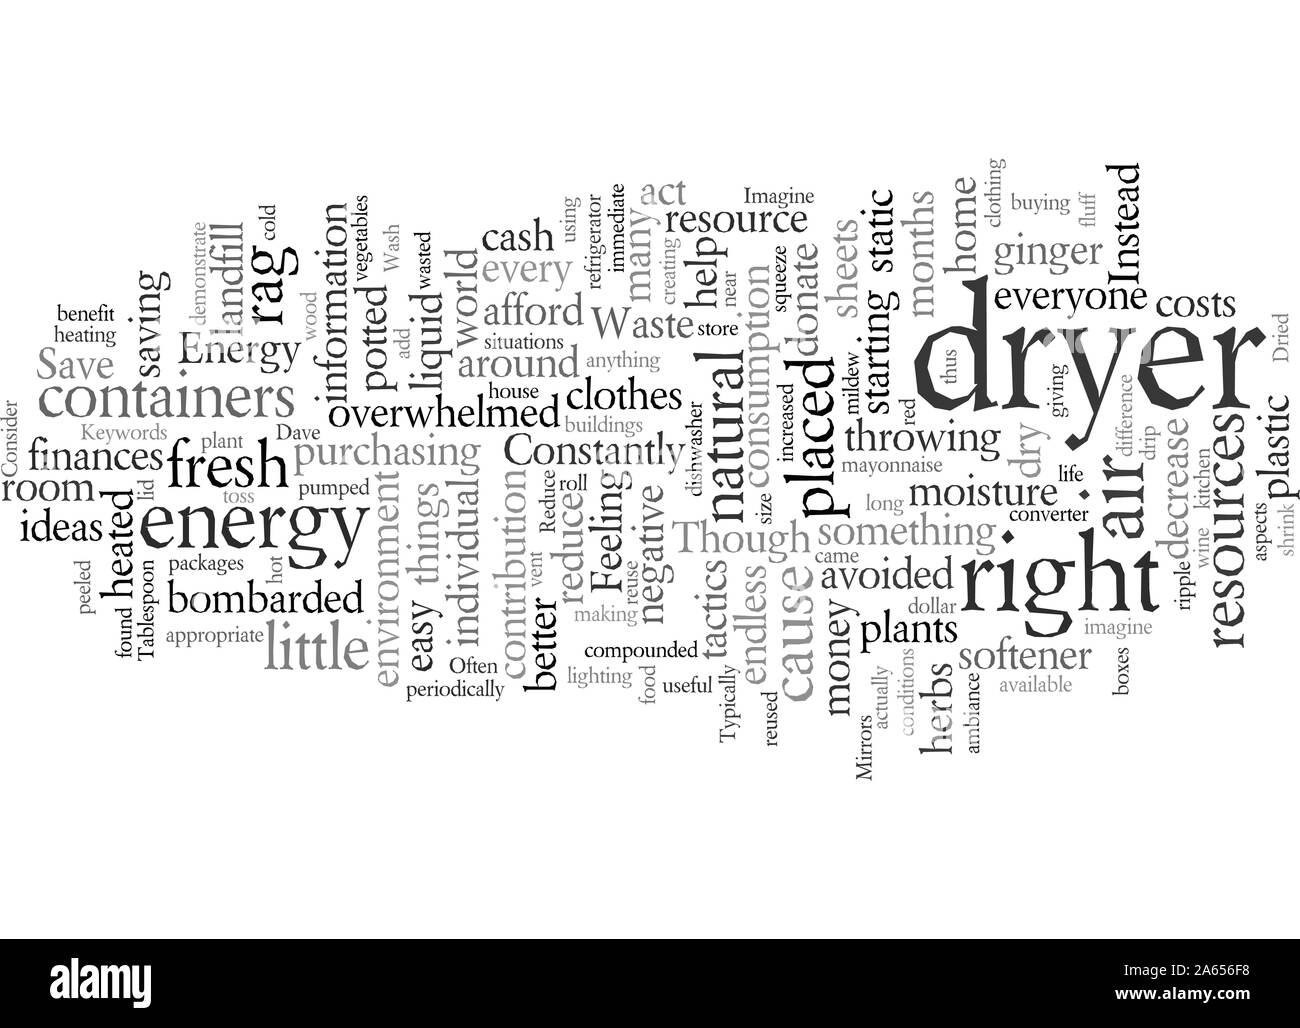 Energy Aware and Waste Wise Stock Vector